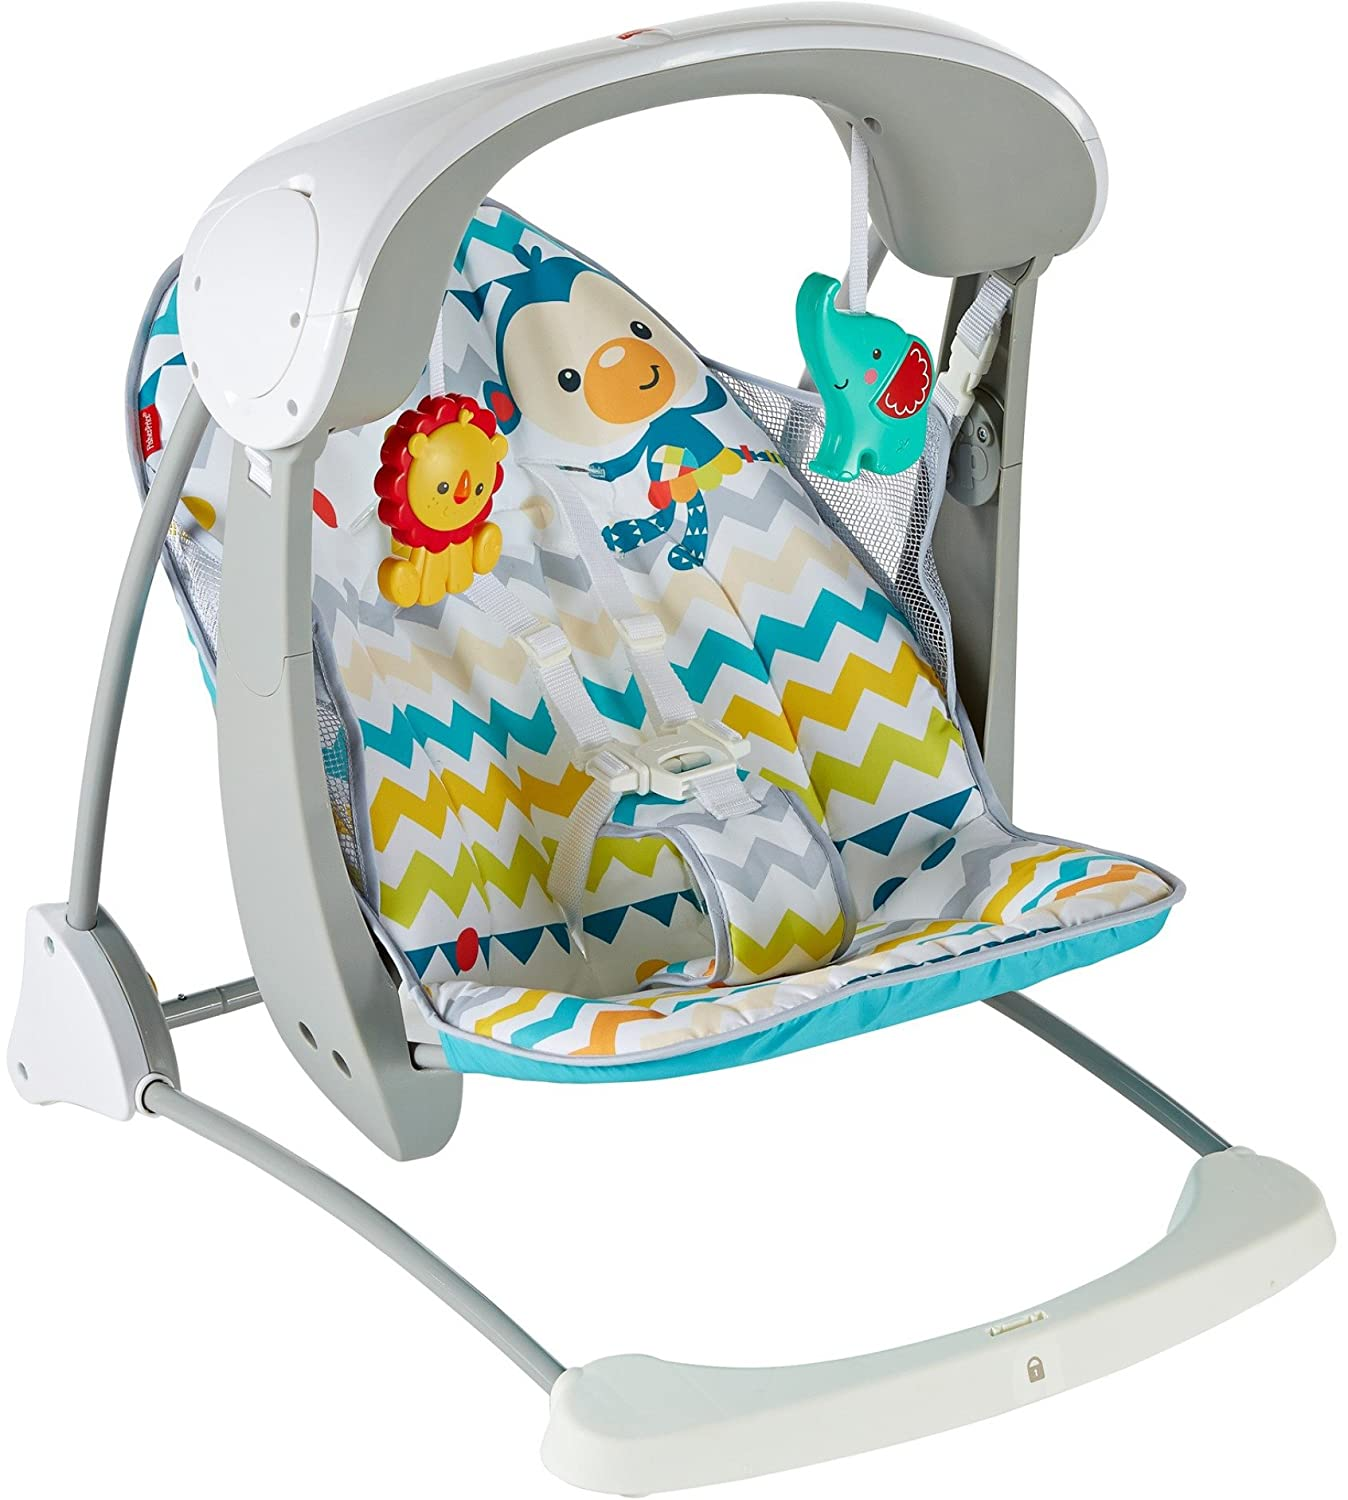 Fisher-Price Deluxe Take Along Swing and Seat CJV03